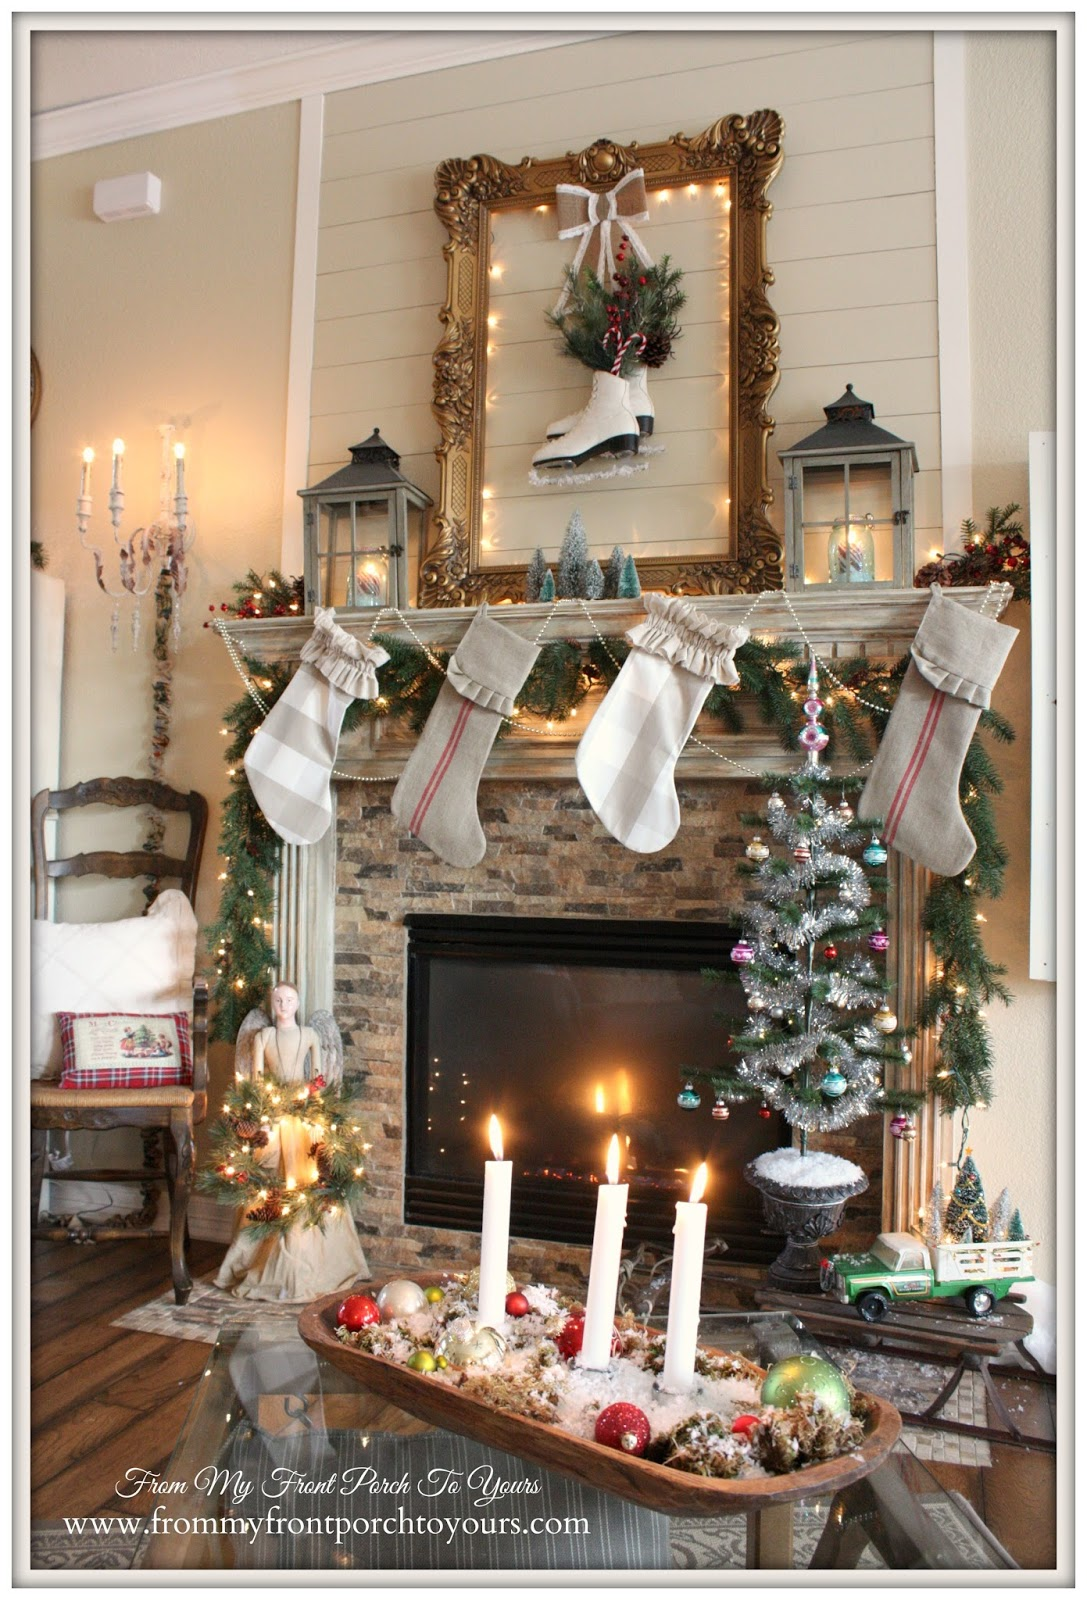 Farmhouse- Vintage -Christmas- Mantel-Ice Skates-Lanterns- From My Front Porch To Yours